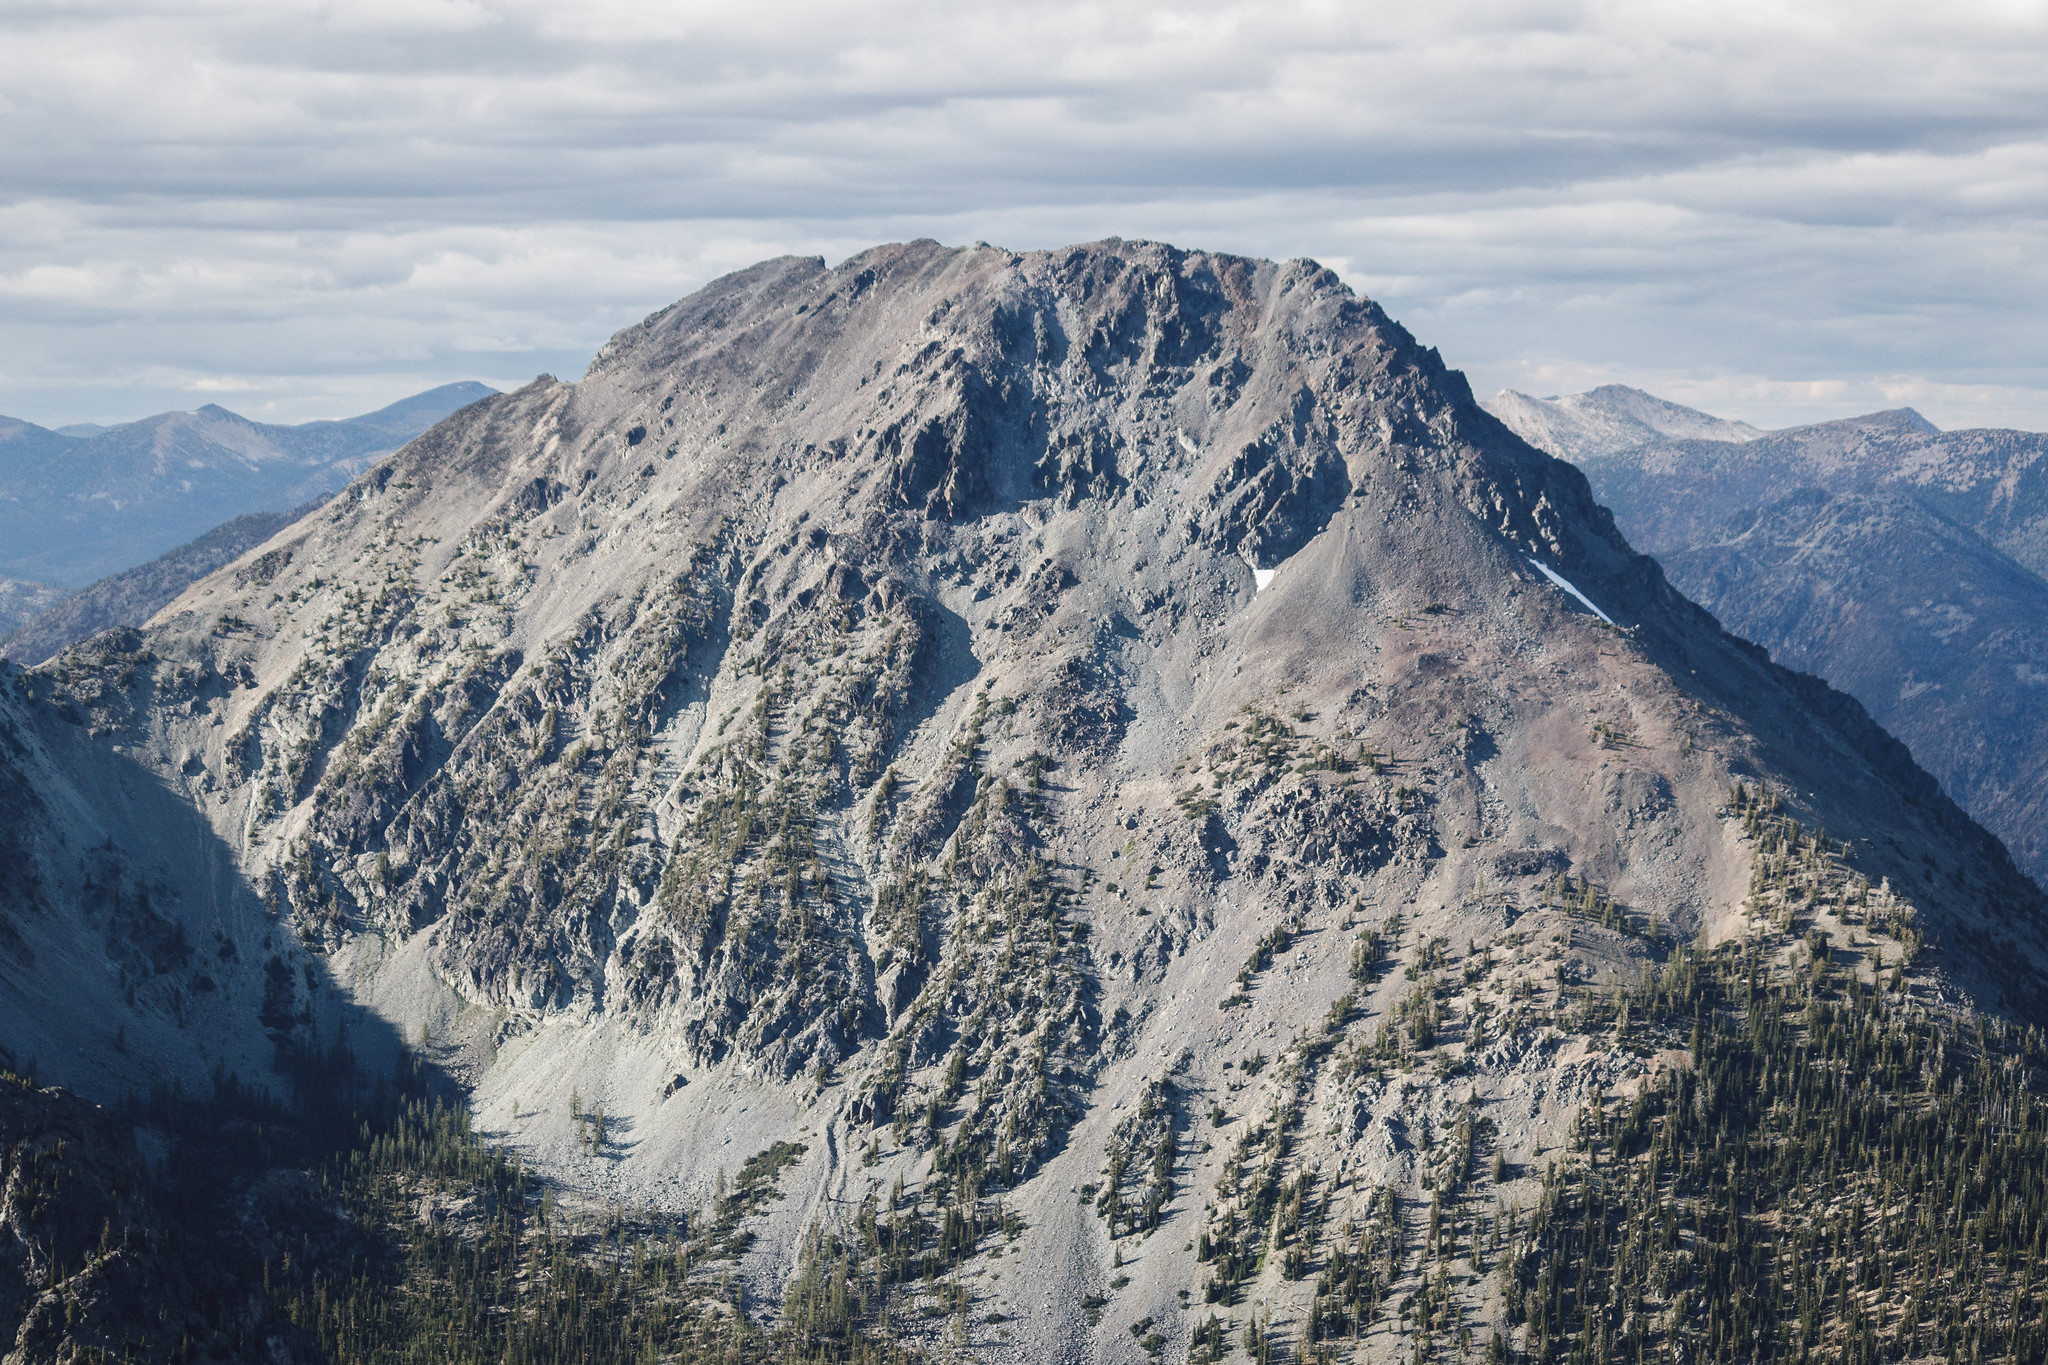 Big Craggy Peak